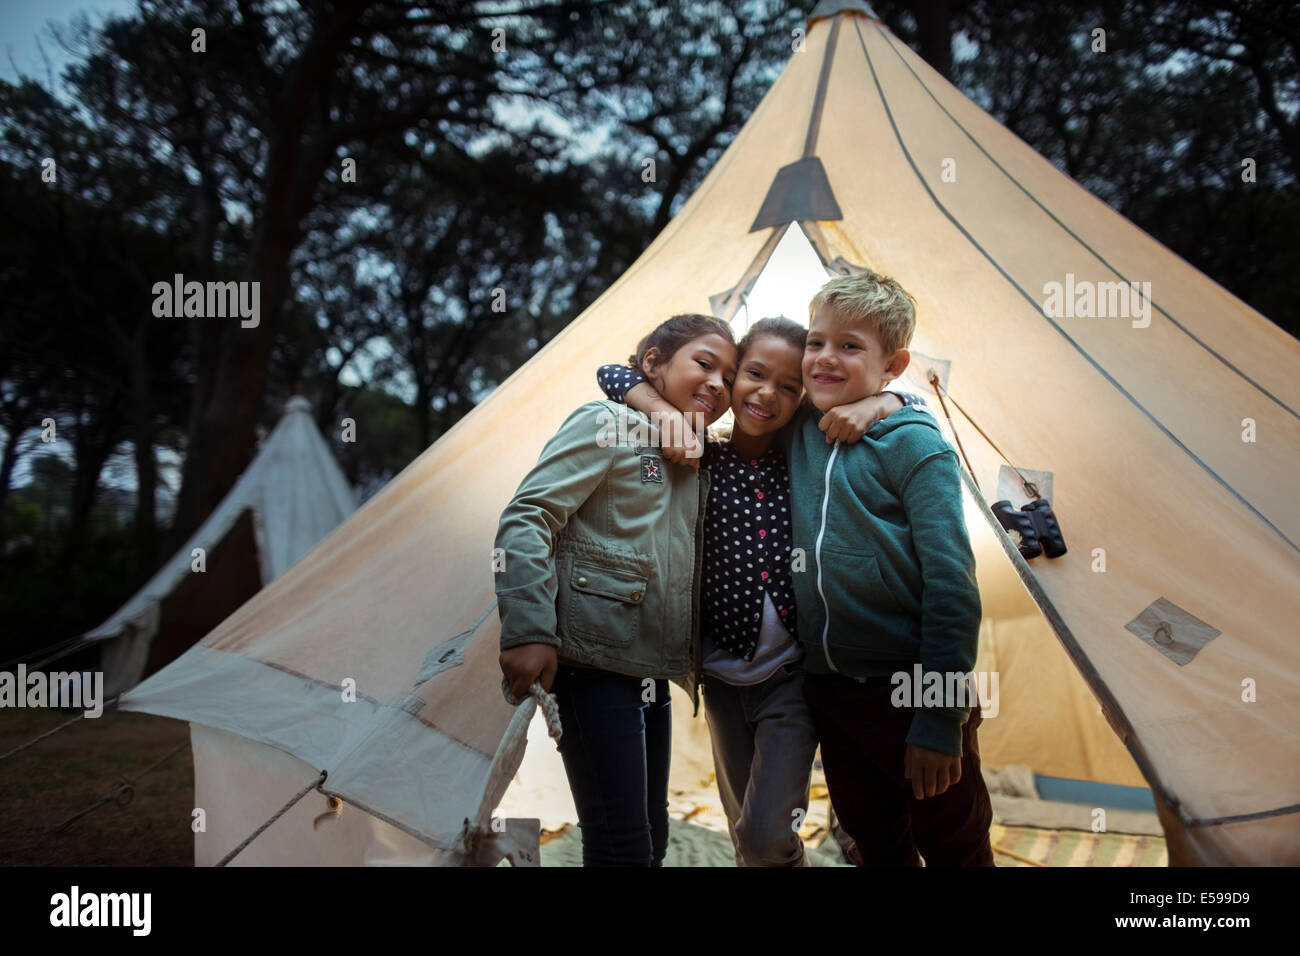 En serrant les enfants au camping de tipis Photo Stock